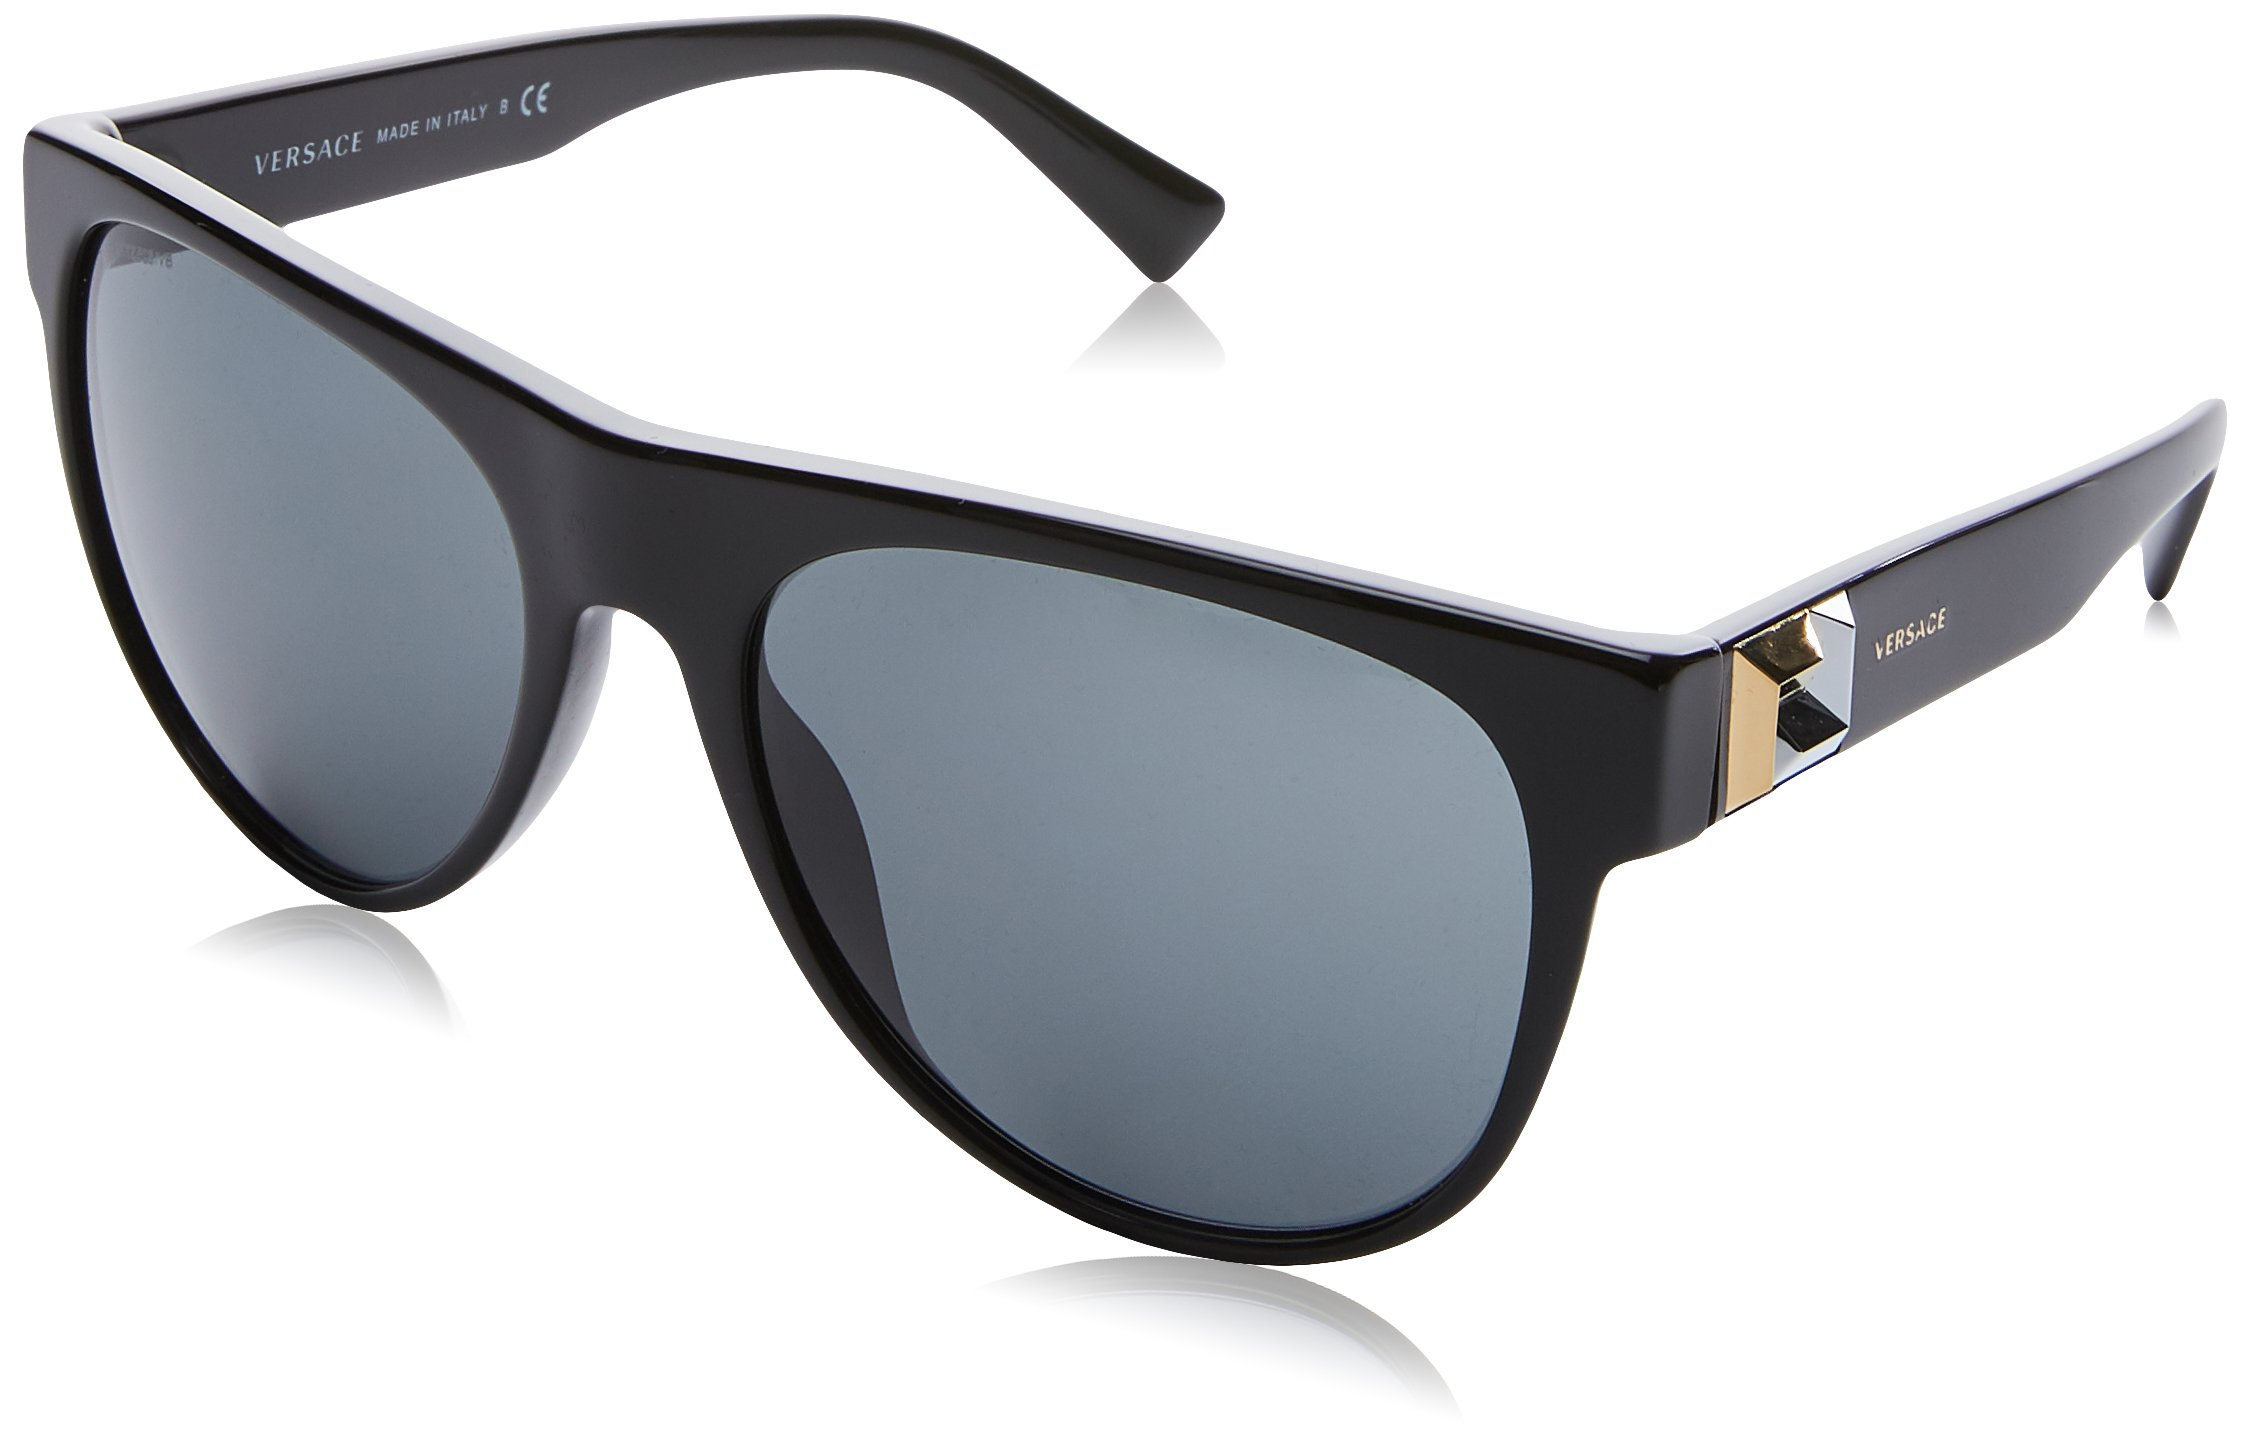 6a0473a4dfda Authentic Versace Sunglasses VE4346 GB1 87 57mm Black-Gold   Grey ...